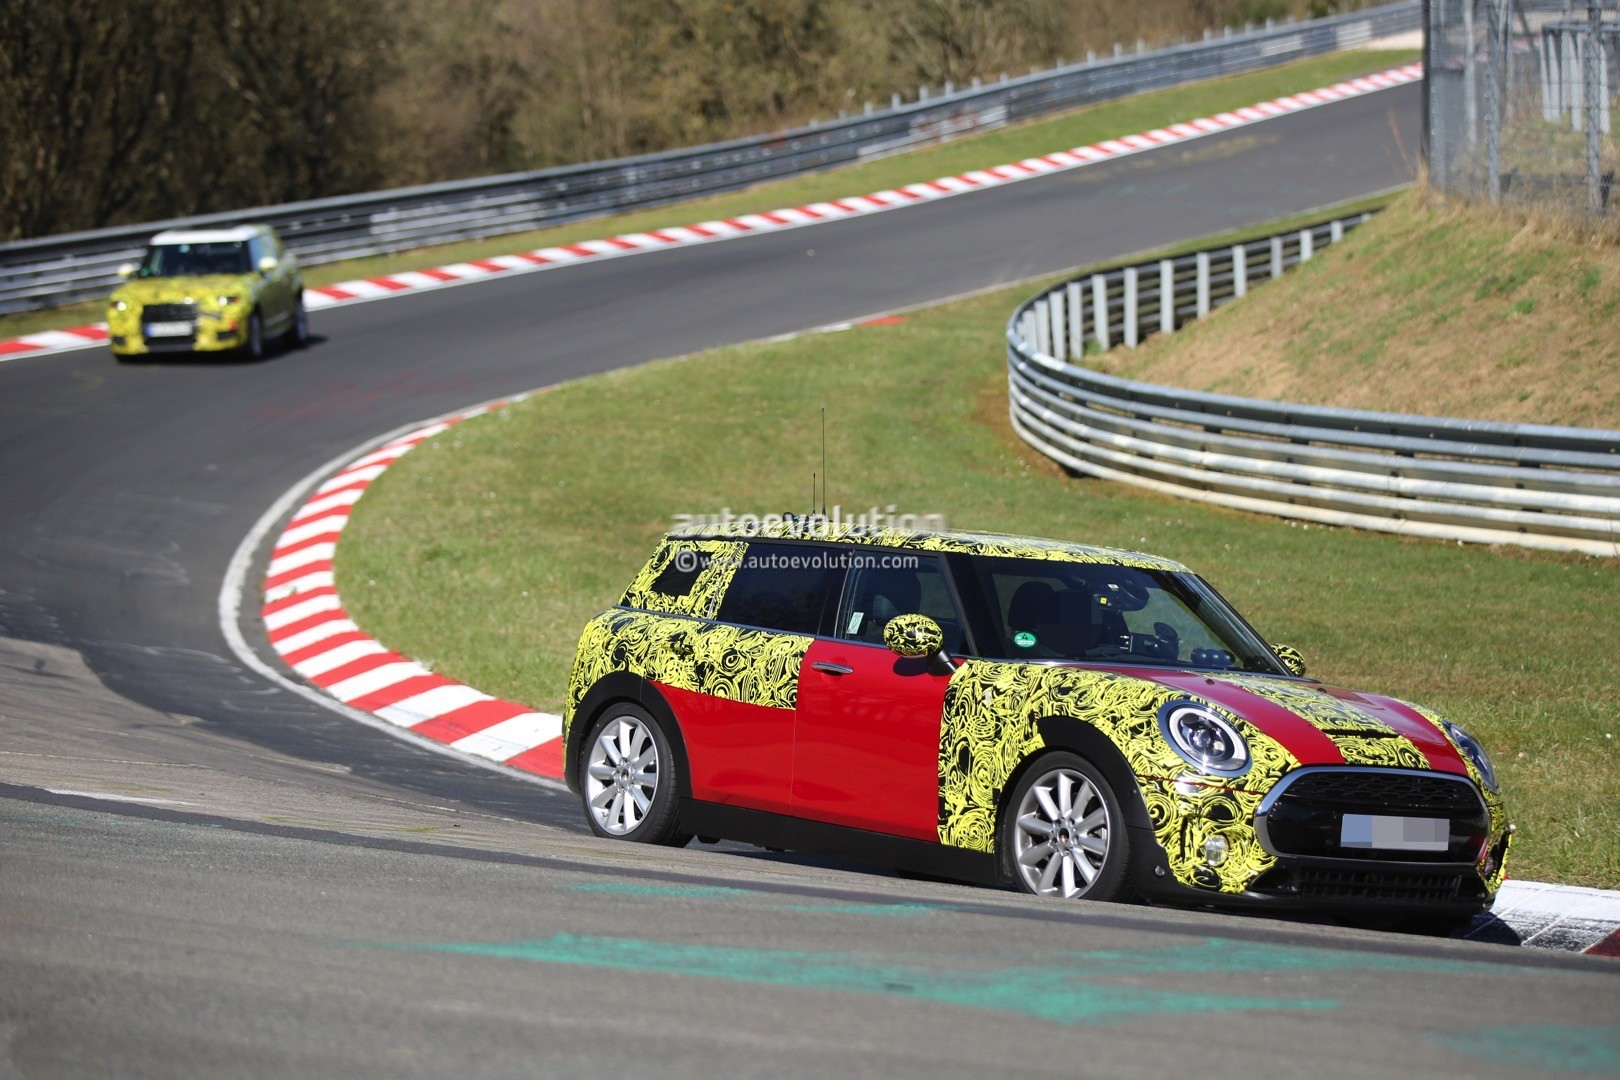 2015 - [Mini] Mini IV Clubman [F54] - Page 13 2016-mini-cooper-s-clubman-shows-new-details-on-the-nurburgring_3